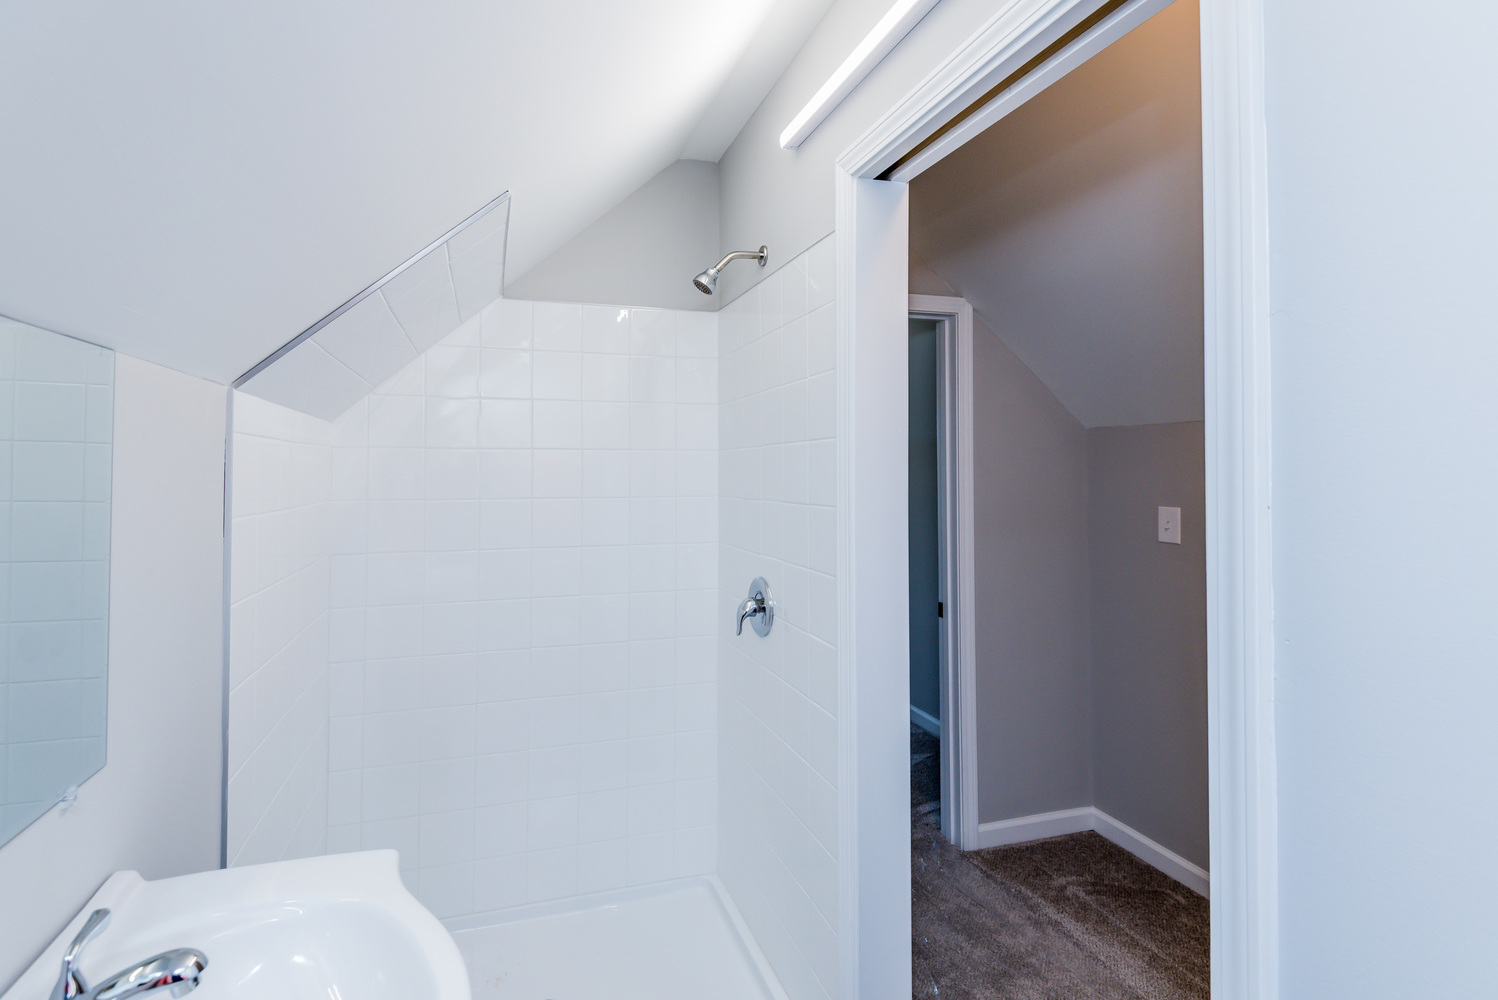 attic_bathroom_1_of_1_-2 - Copy.jpg